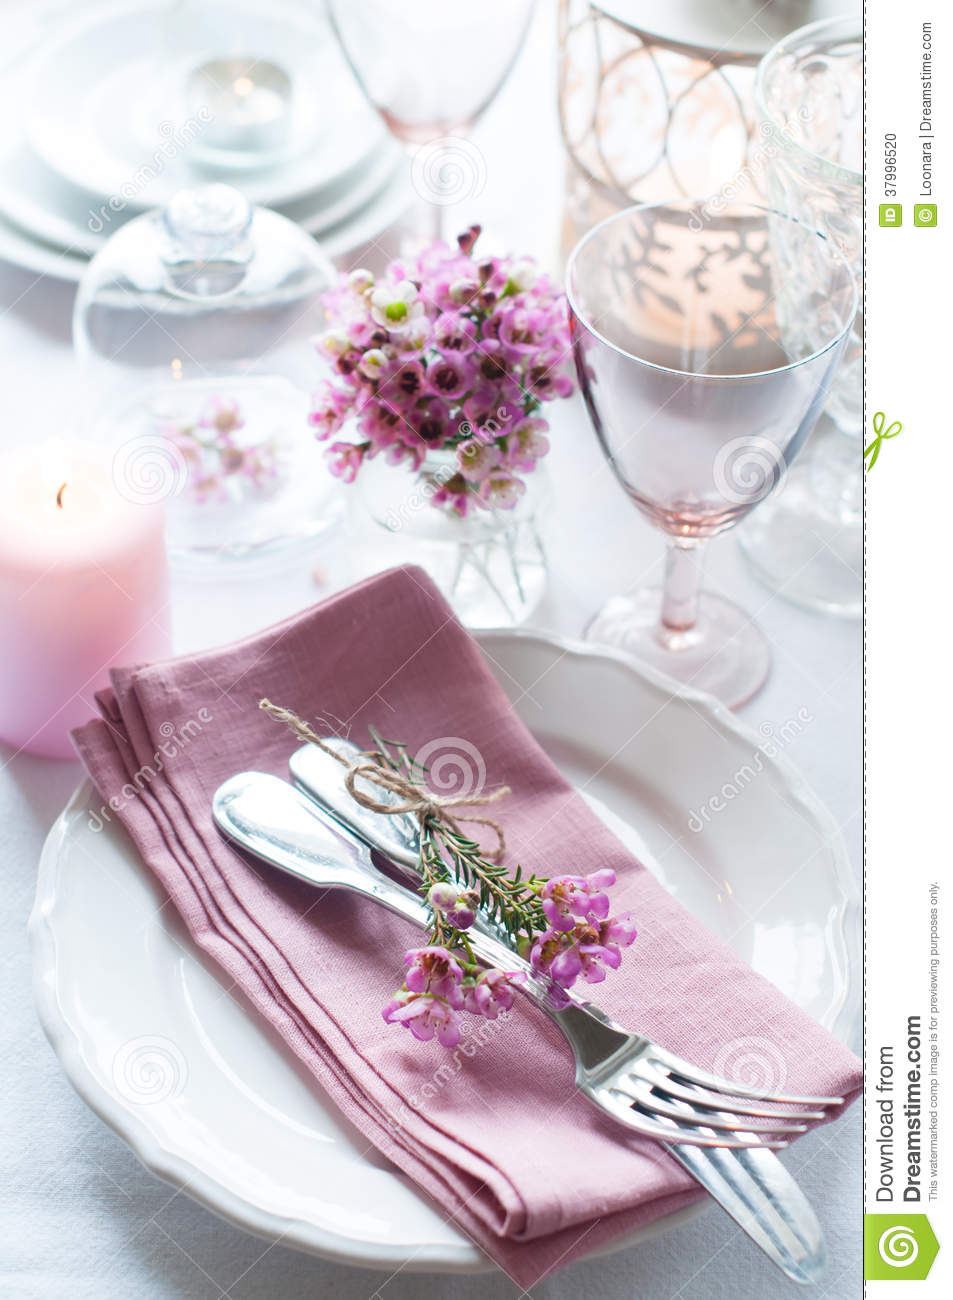 Festive Wedding Table Setting Stock Photo Image 37996520